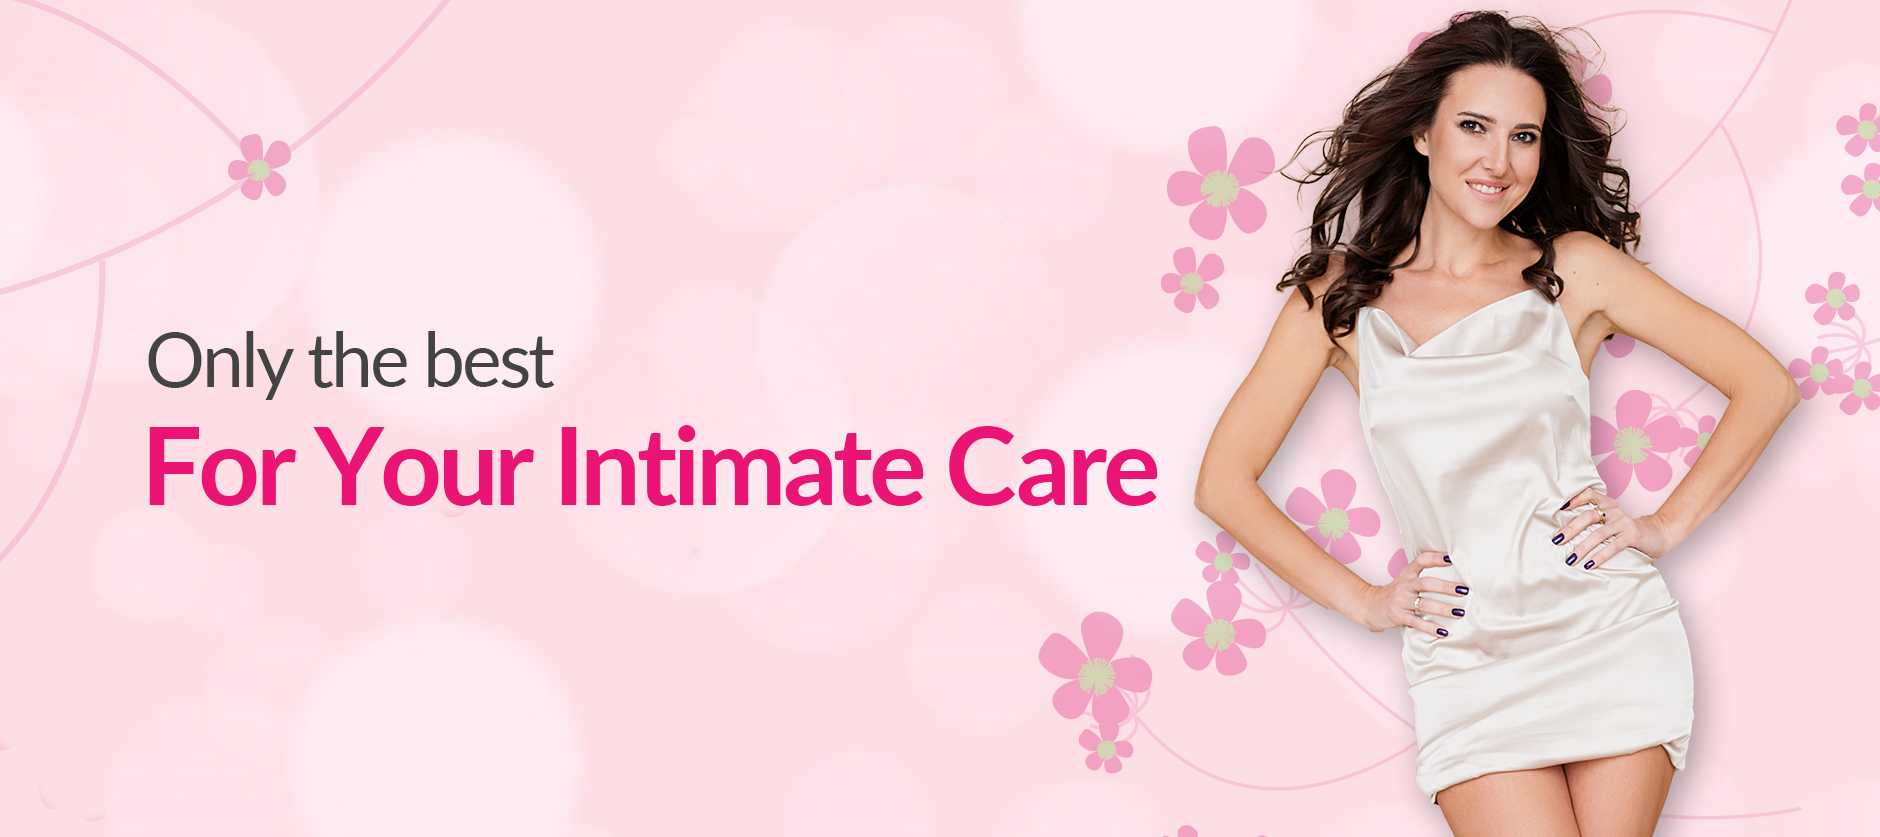 everteen offers only the best for your feminine intimate hygiene